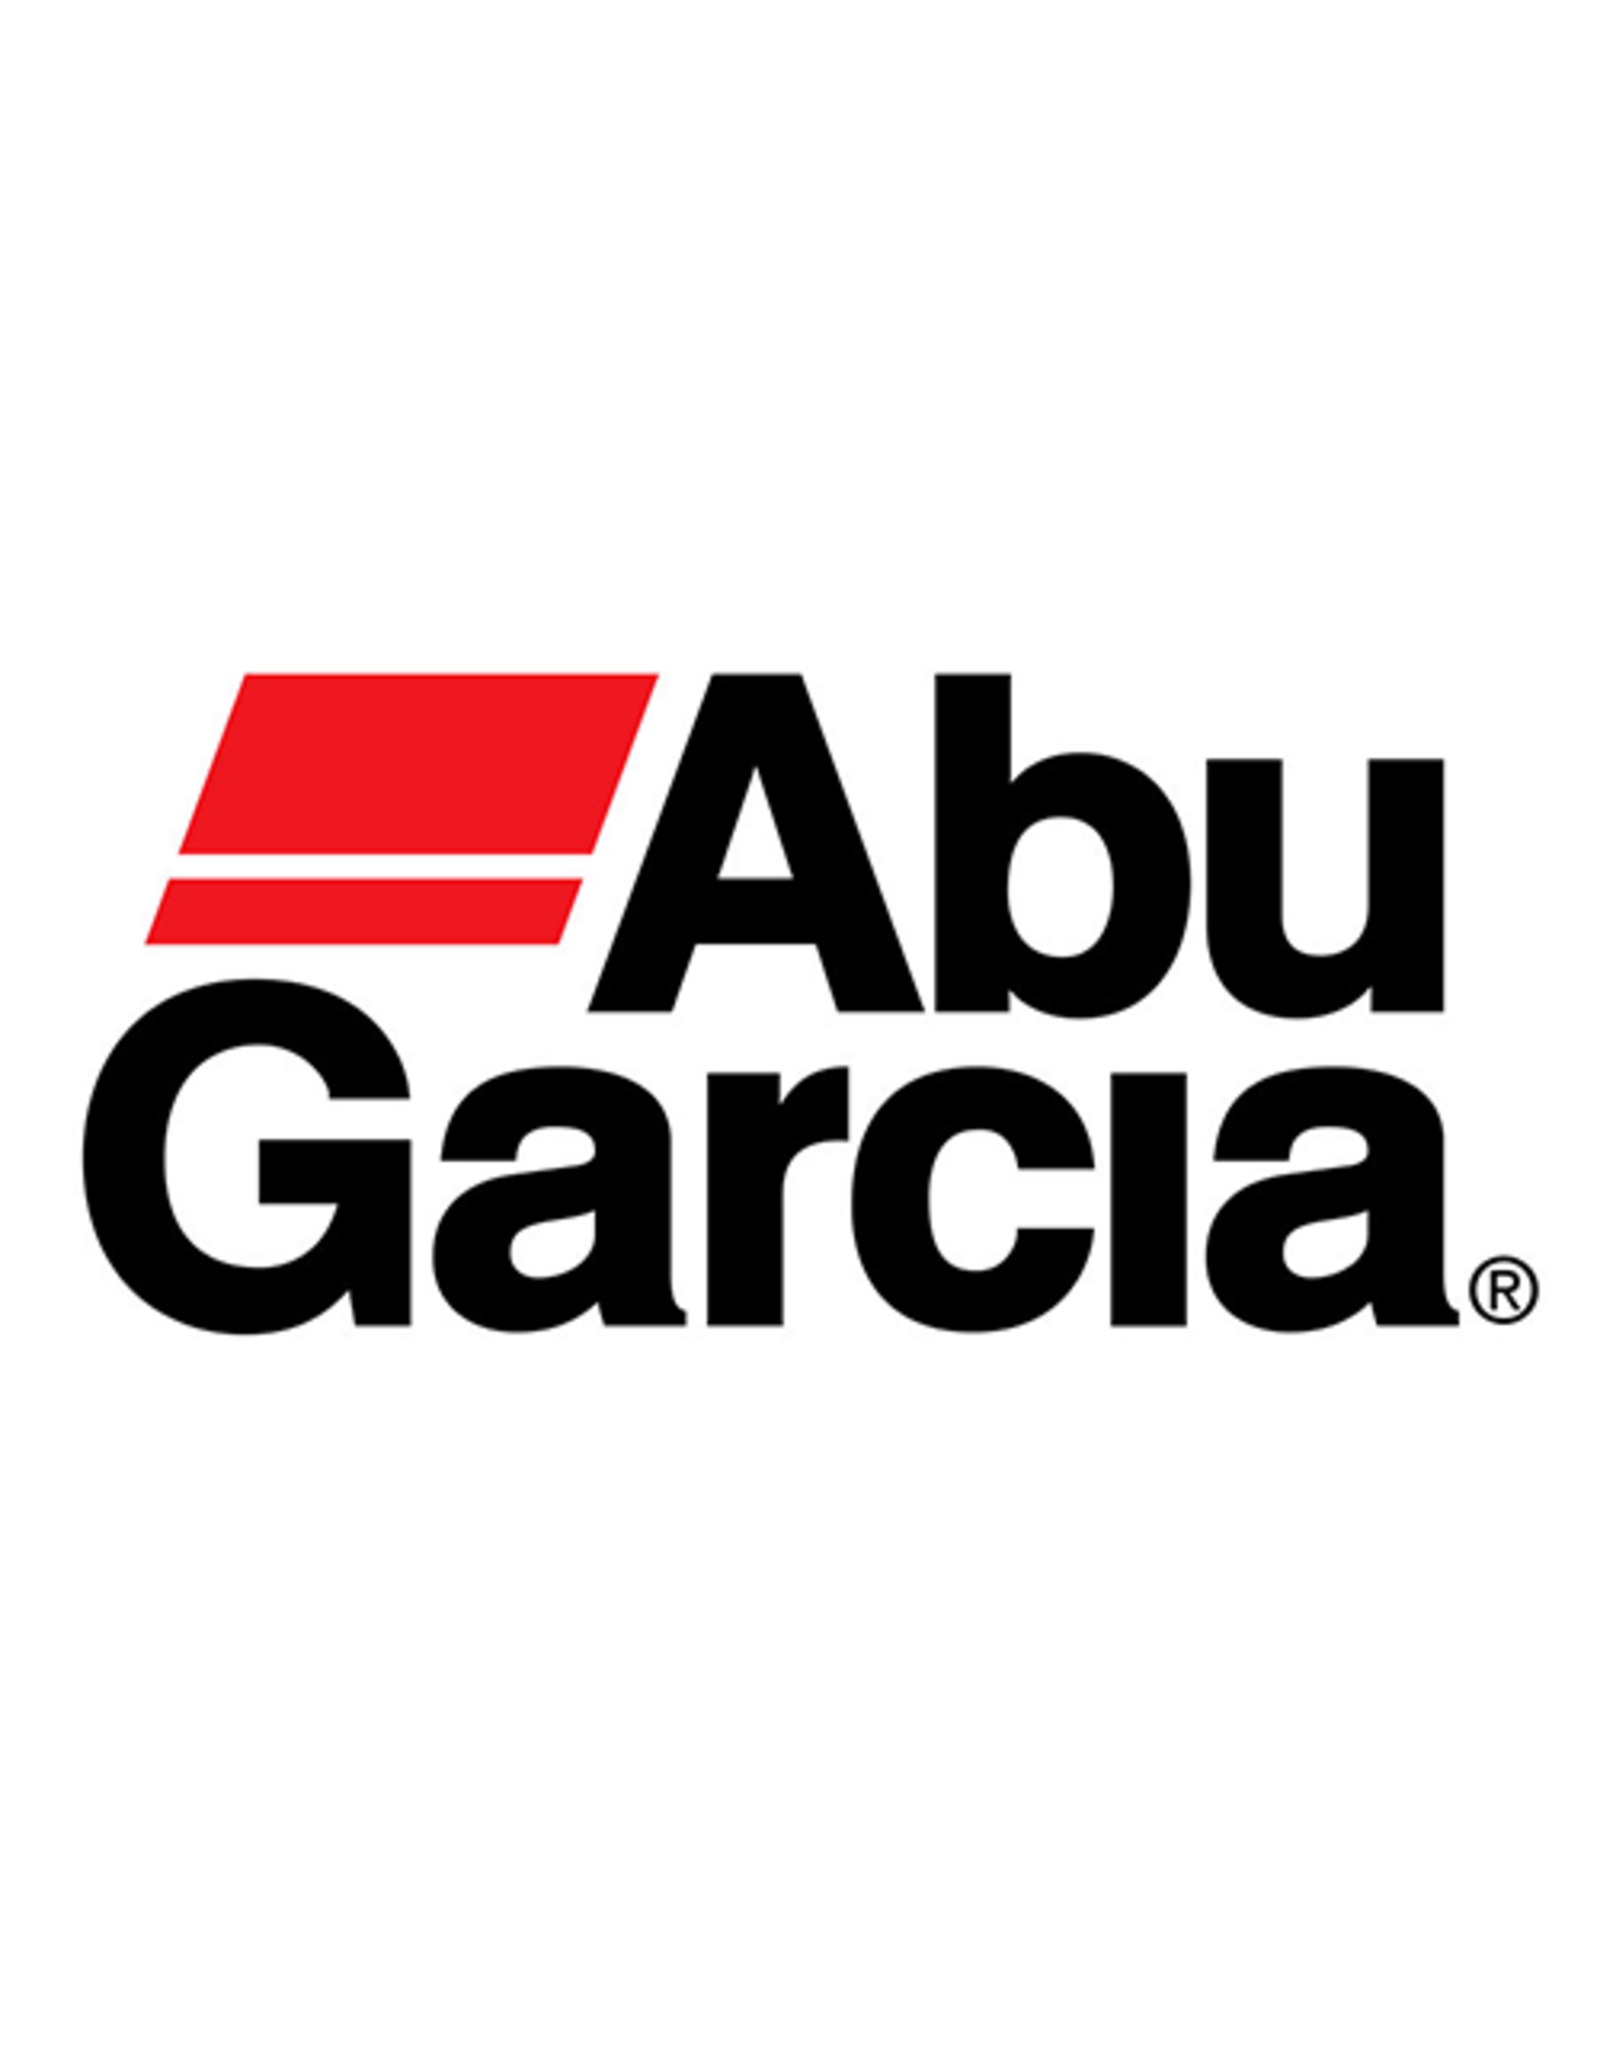 Abu Garcia CARRIAGE RELEASE SPRING/NLA